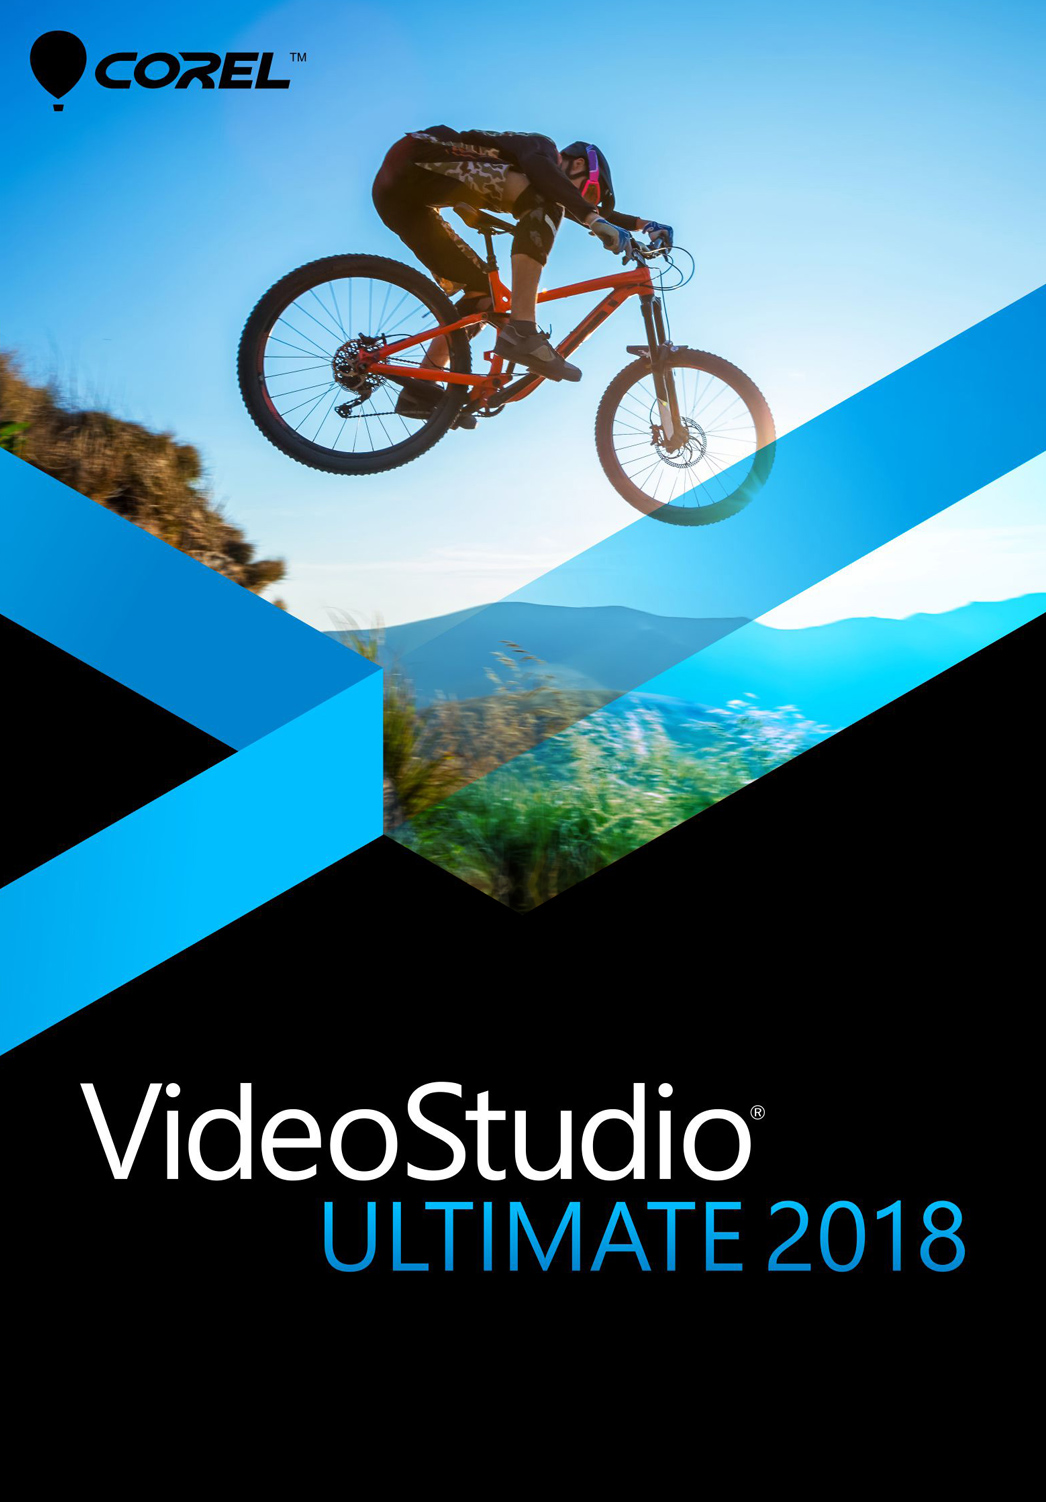 https://img5.downloadha.com/hosein/files/2016/07/Corel-VideoStudio-Ultimate-2018-cover-large.jpg